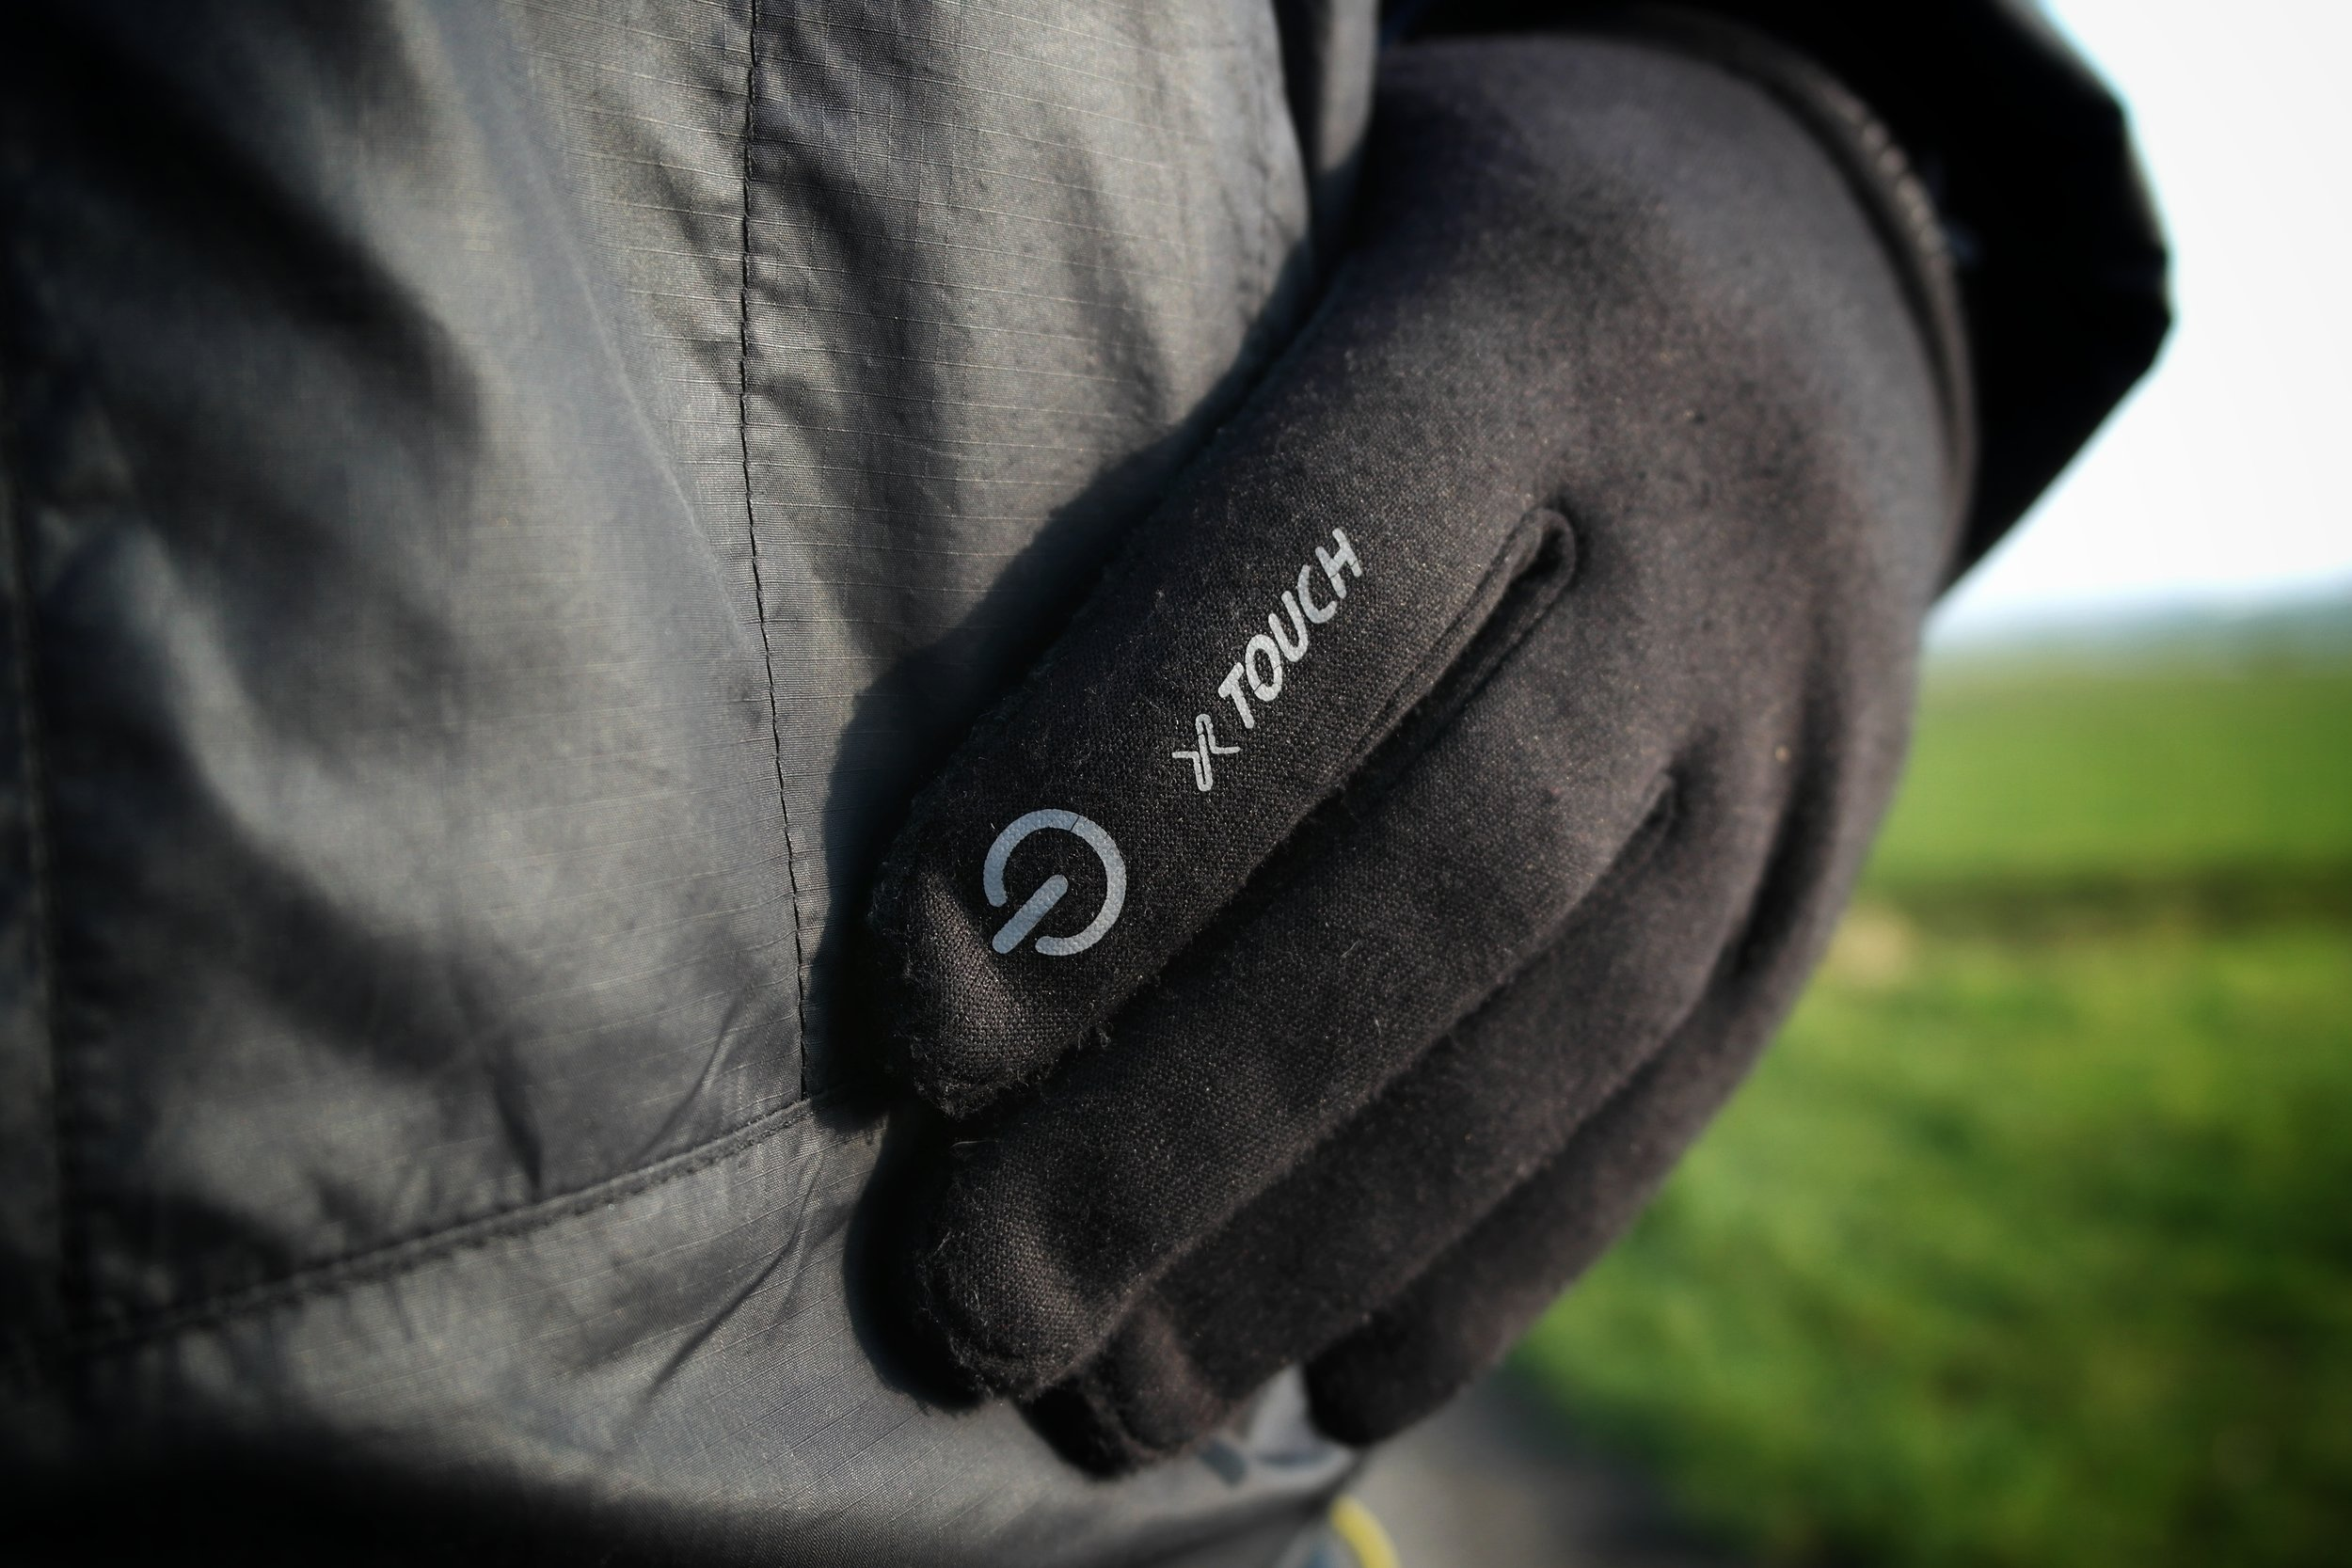 The brushed material make the glove extremely comfortable and warm.